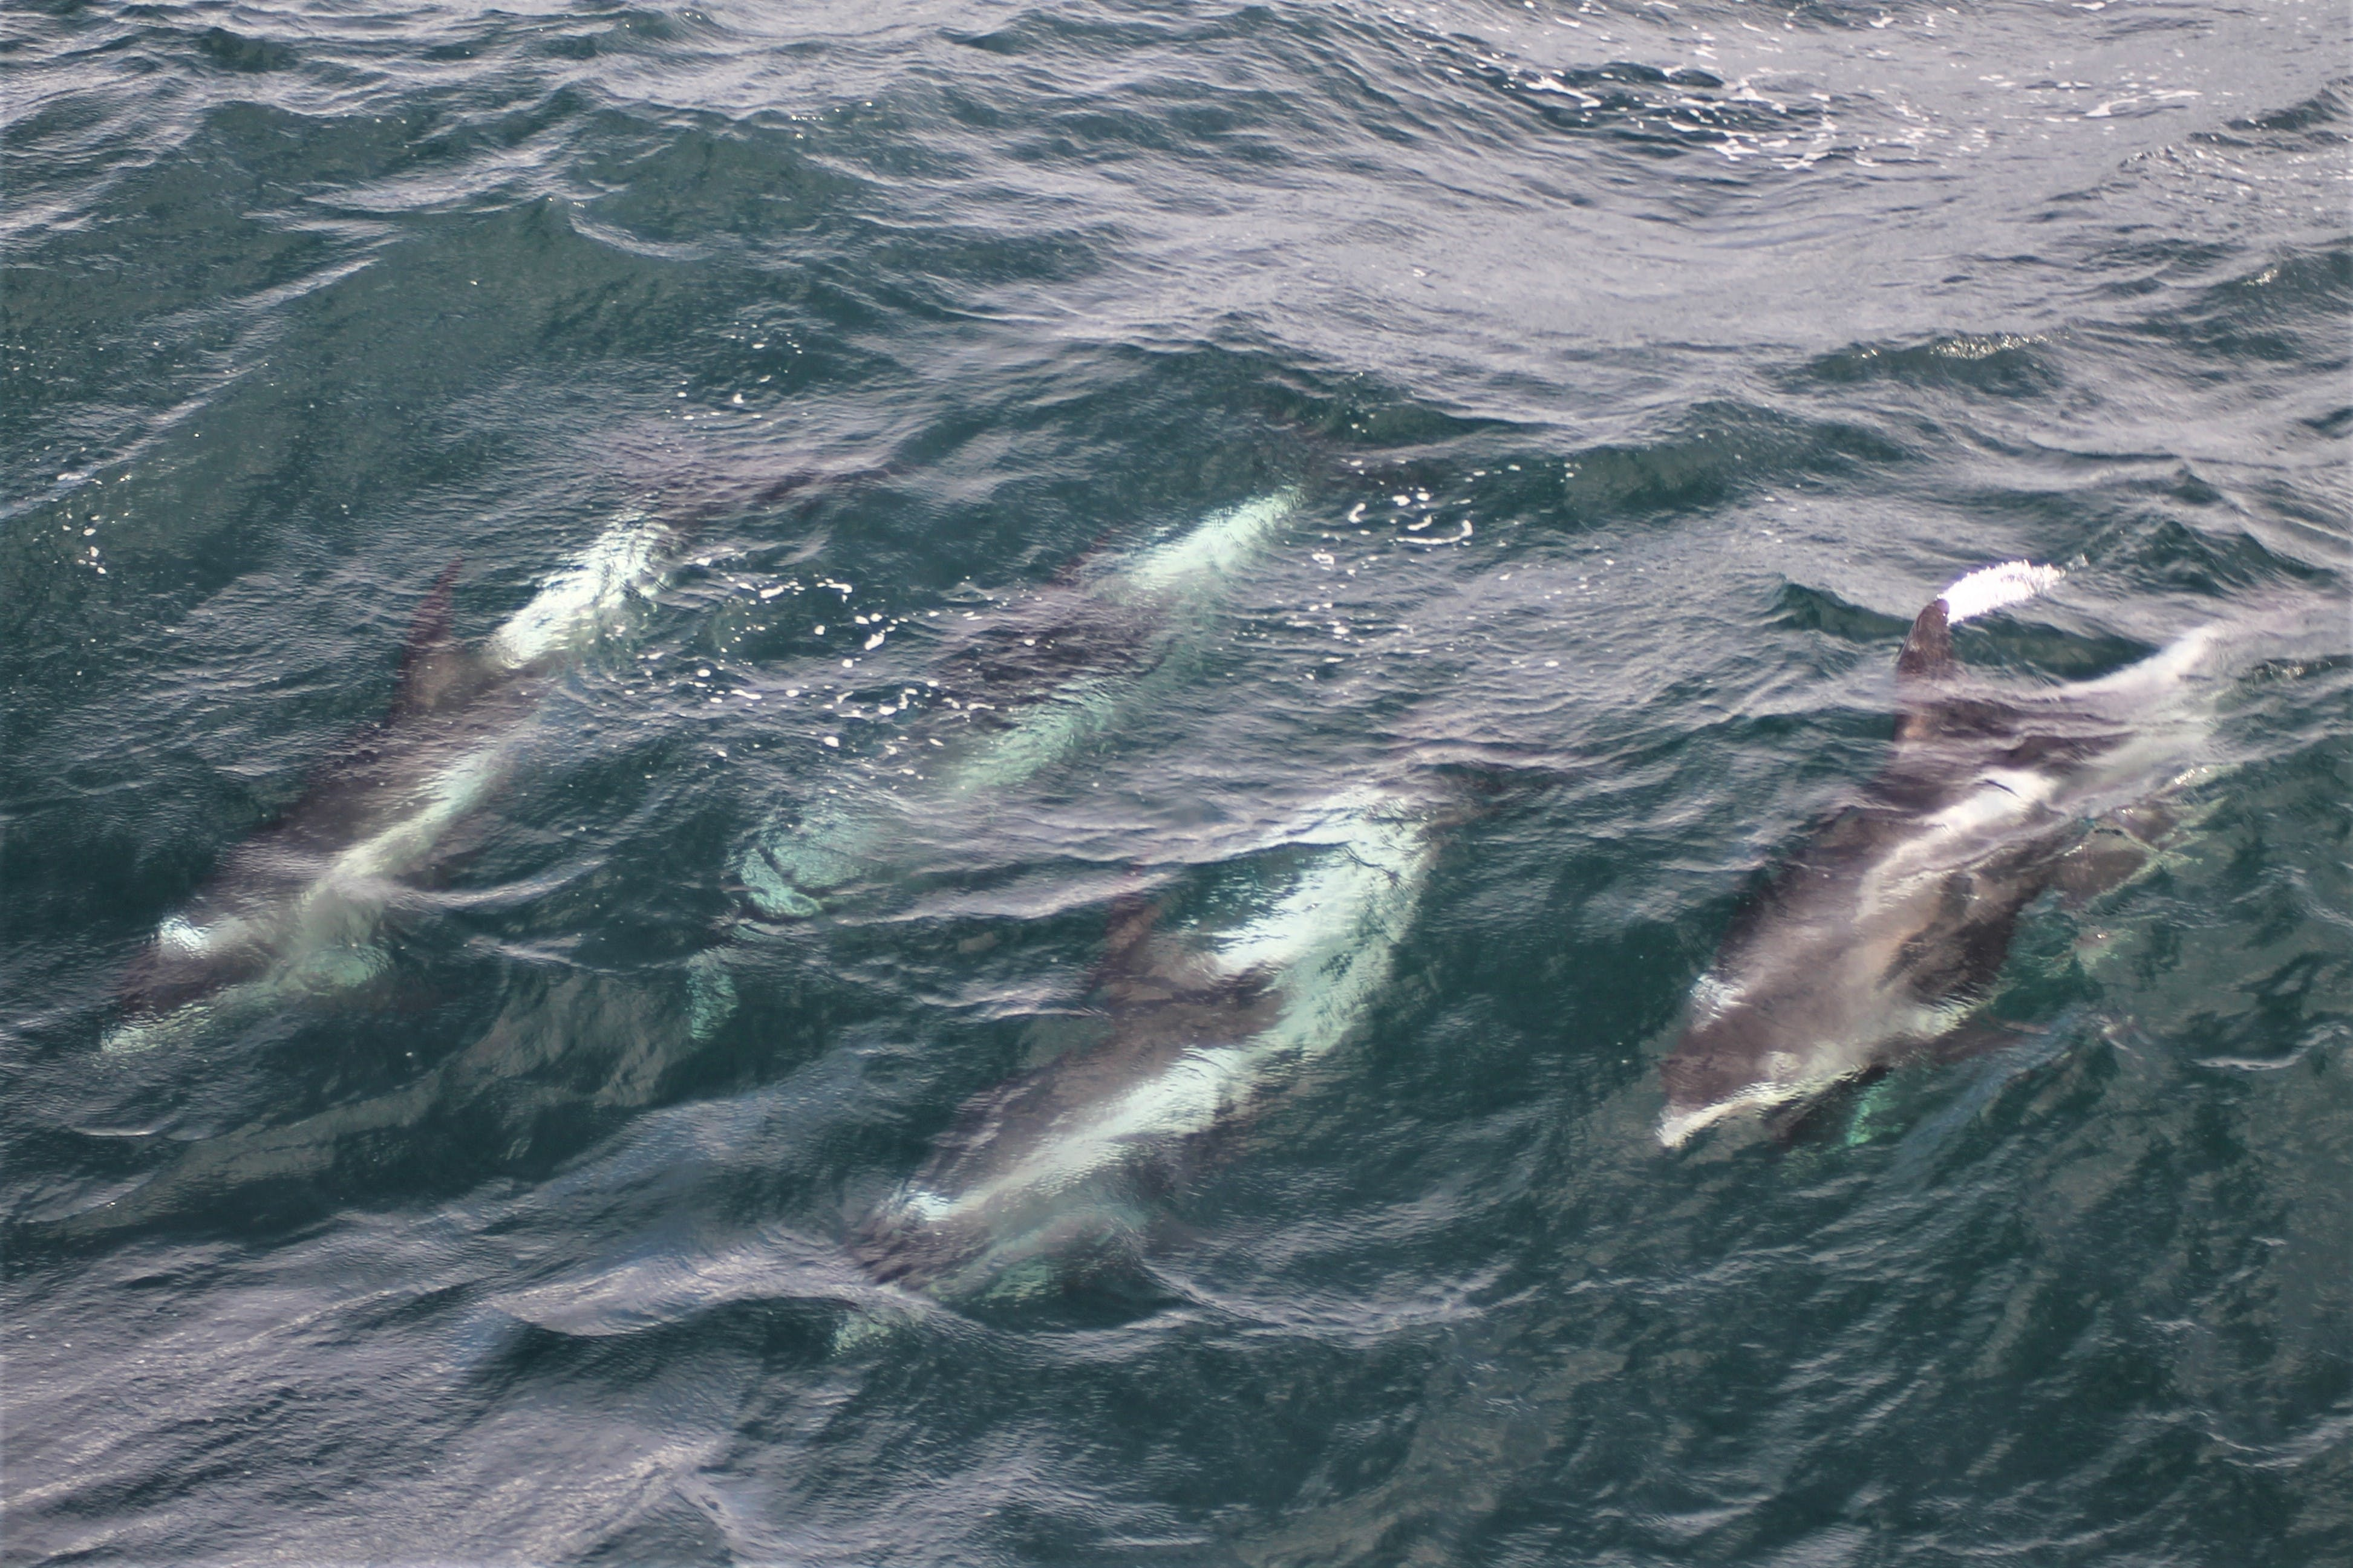 Creatures of the sea | Fishing and whale watching tour from Reykjavik